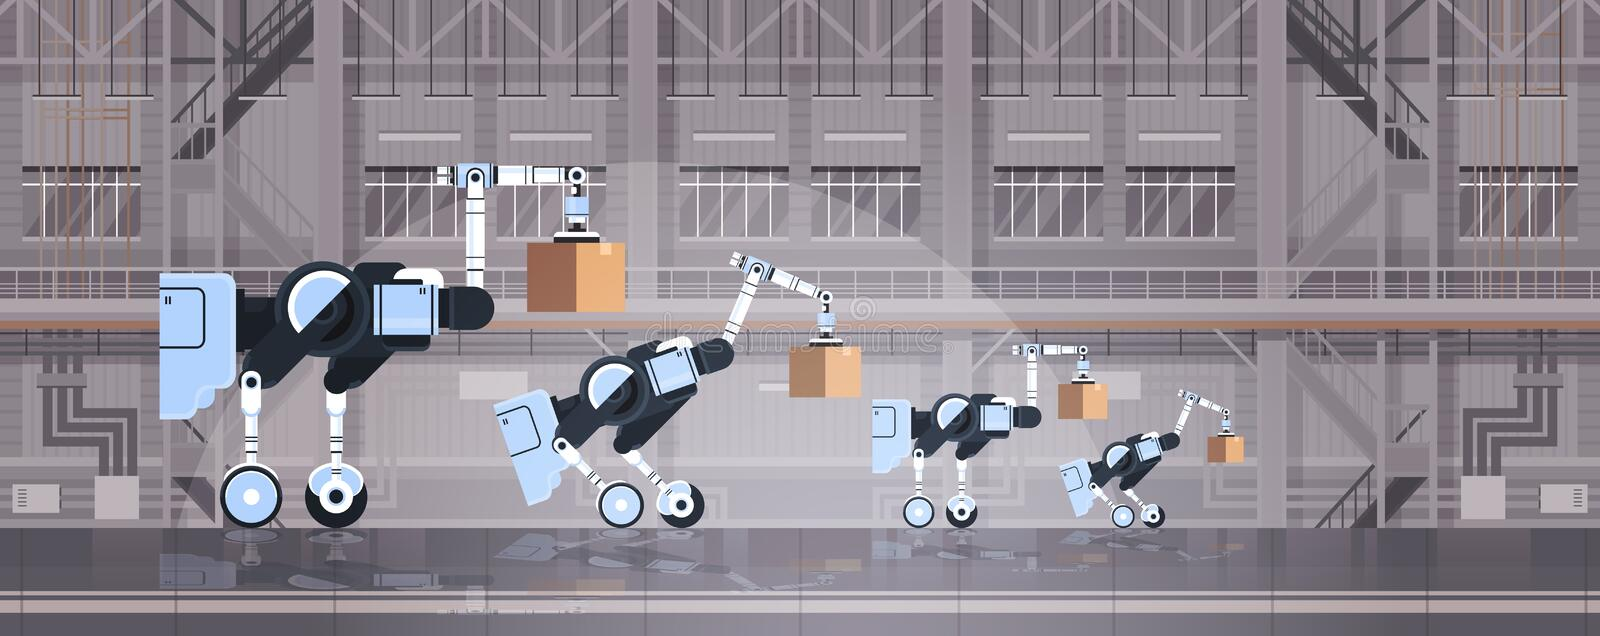 Robotic workers loading cardboard boxes hi-tech smart factory warehouse interior logistics automation technology concept. Modern robots cartoon characters flat vector illustration